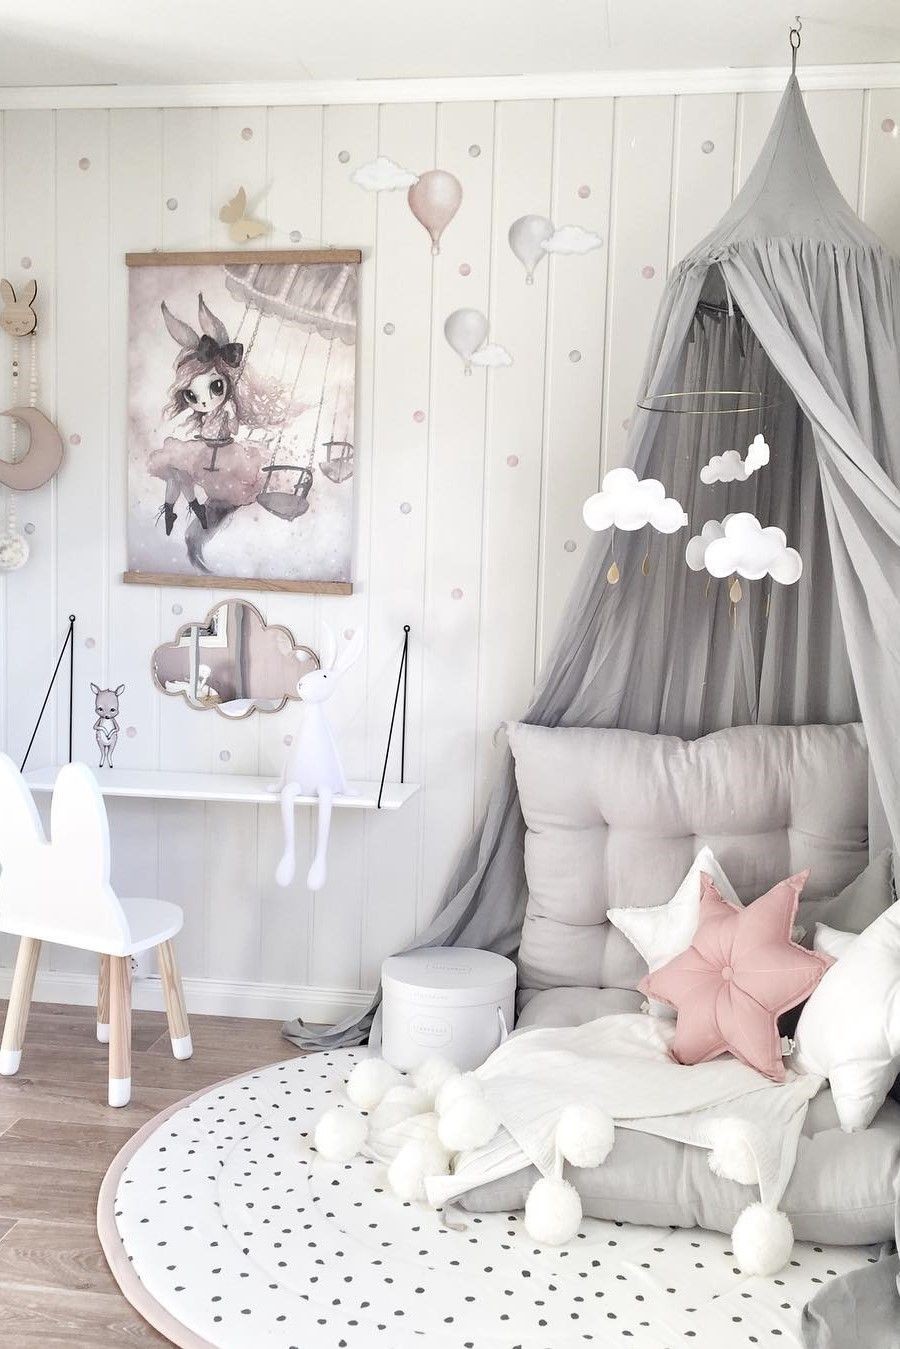 Room Design For Girls Inspiration From Instagram Mamma Line Pastel Girls Room Ideas